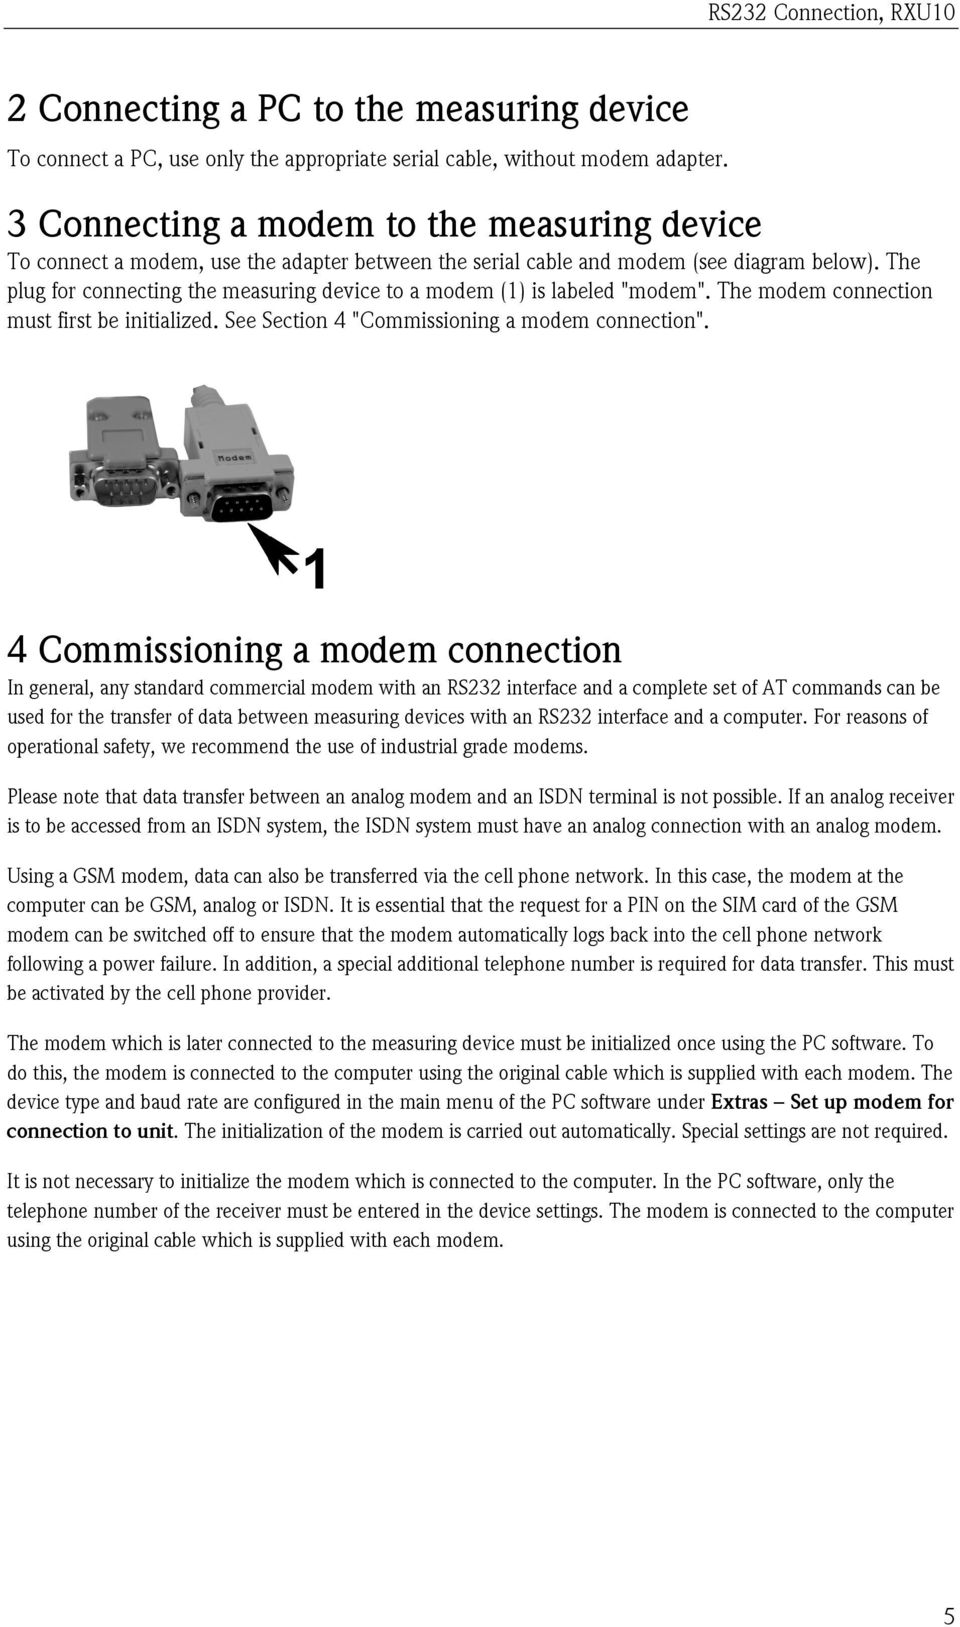 "The plug for connecting the measuring device to a modem (1) is labeled ""modem"". The modem connection must first be initialized. See Section 4 ""Commissioning a modem connection""."